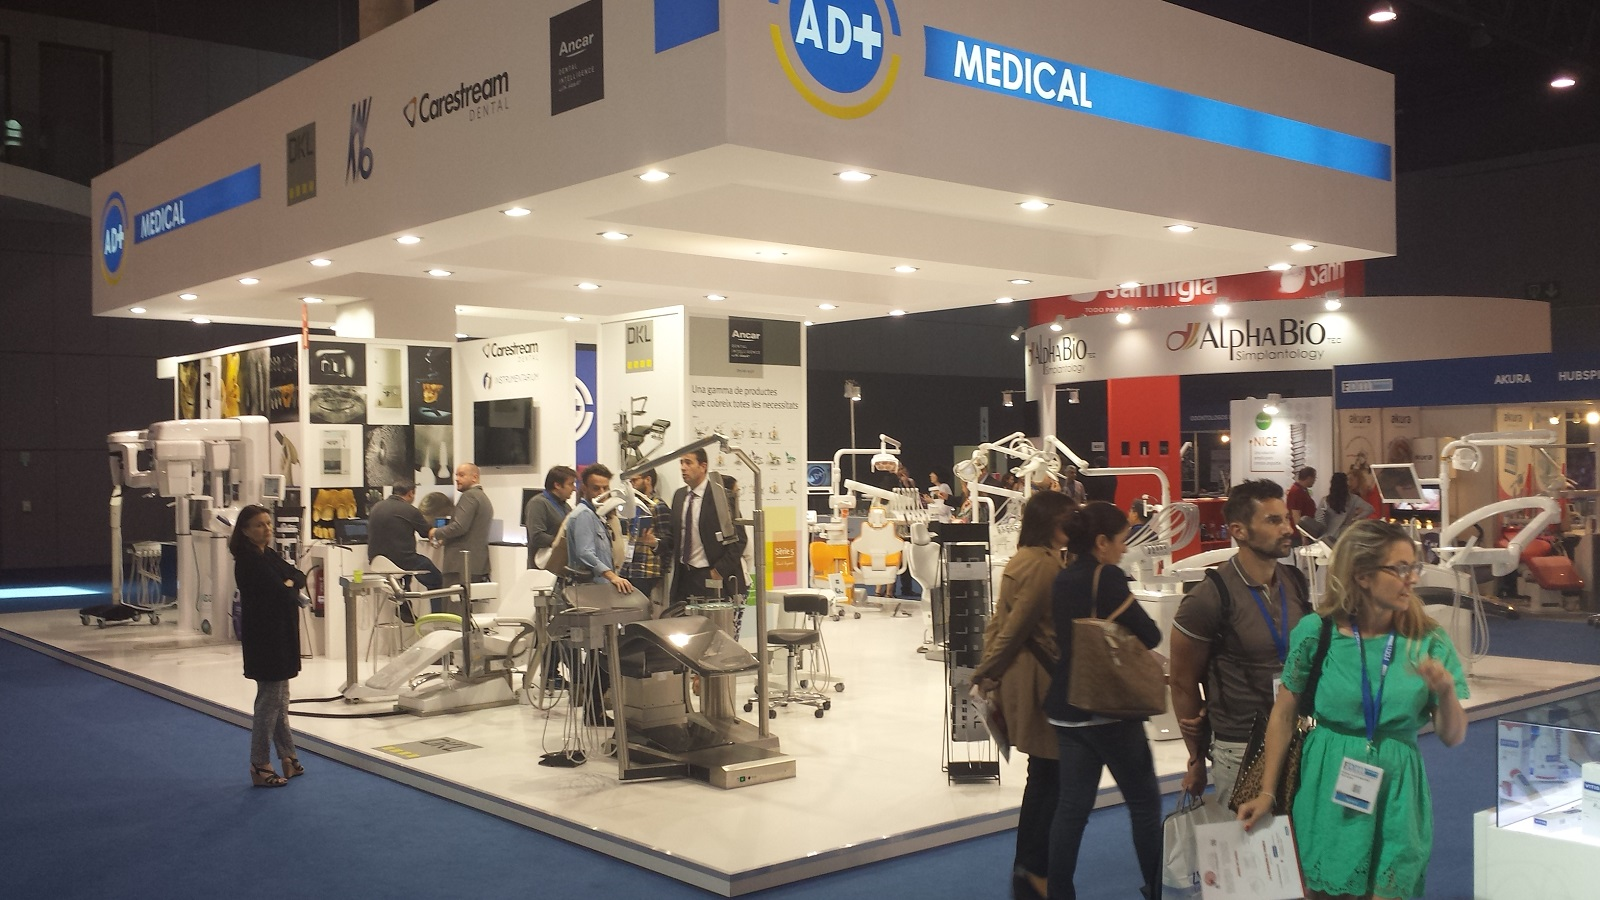 Éxito de AD+ MEDICAL en el FORUM DENTAL 2015